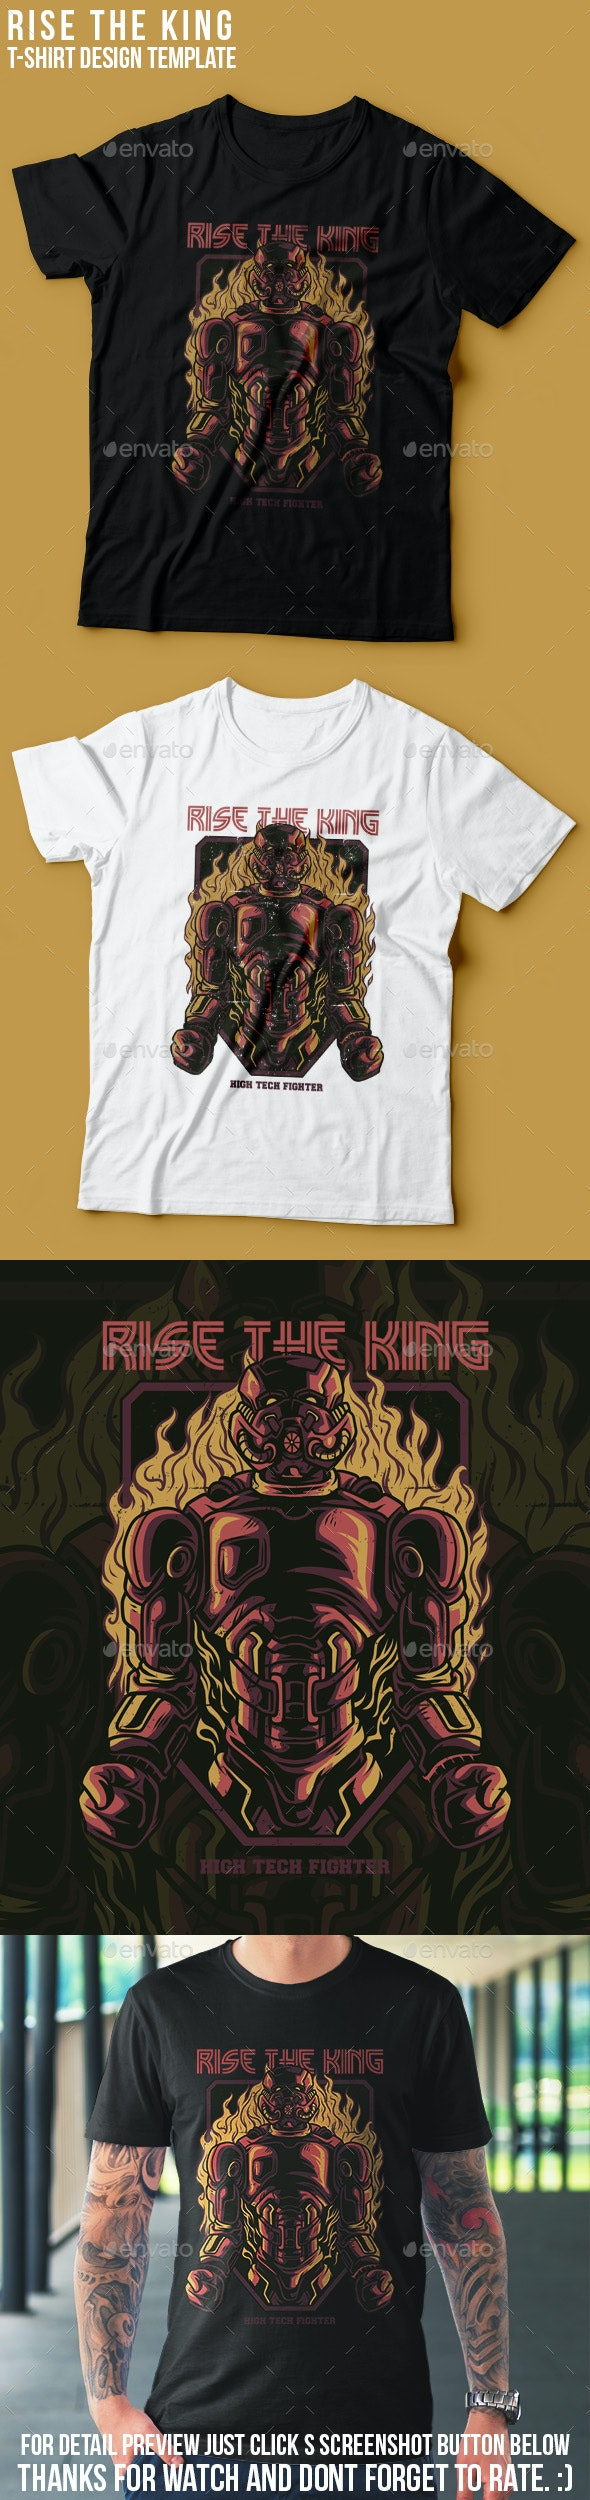 Rise the King T-Shirt Design - Events T-Shirts